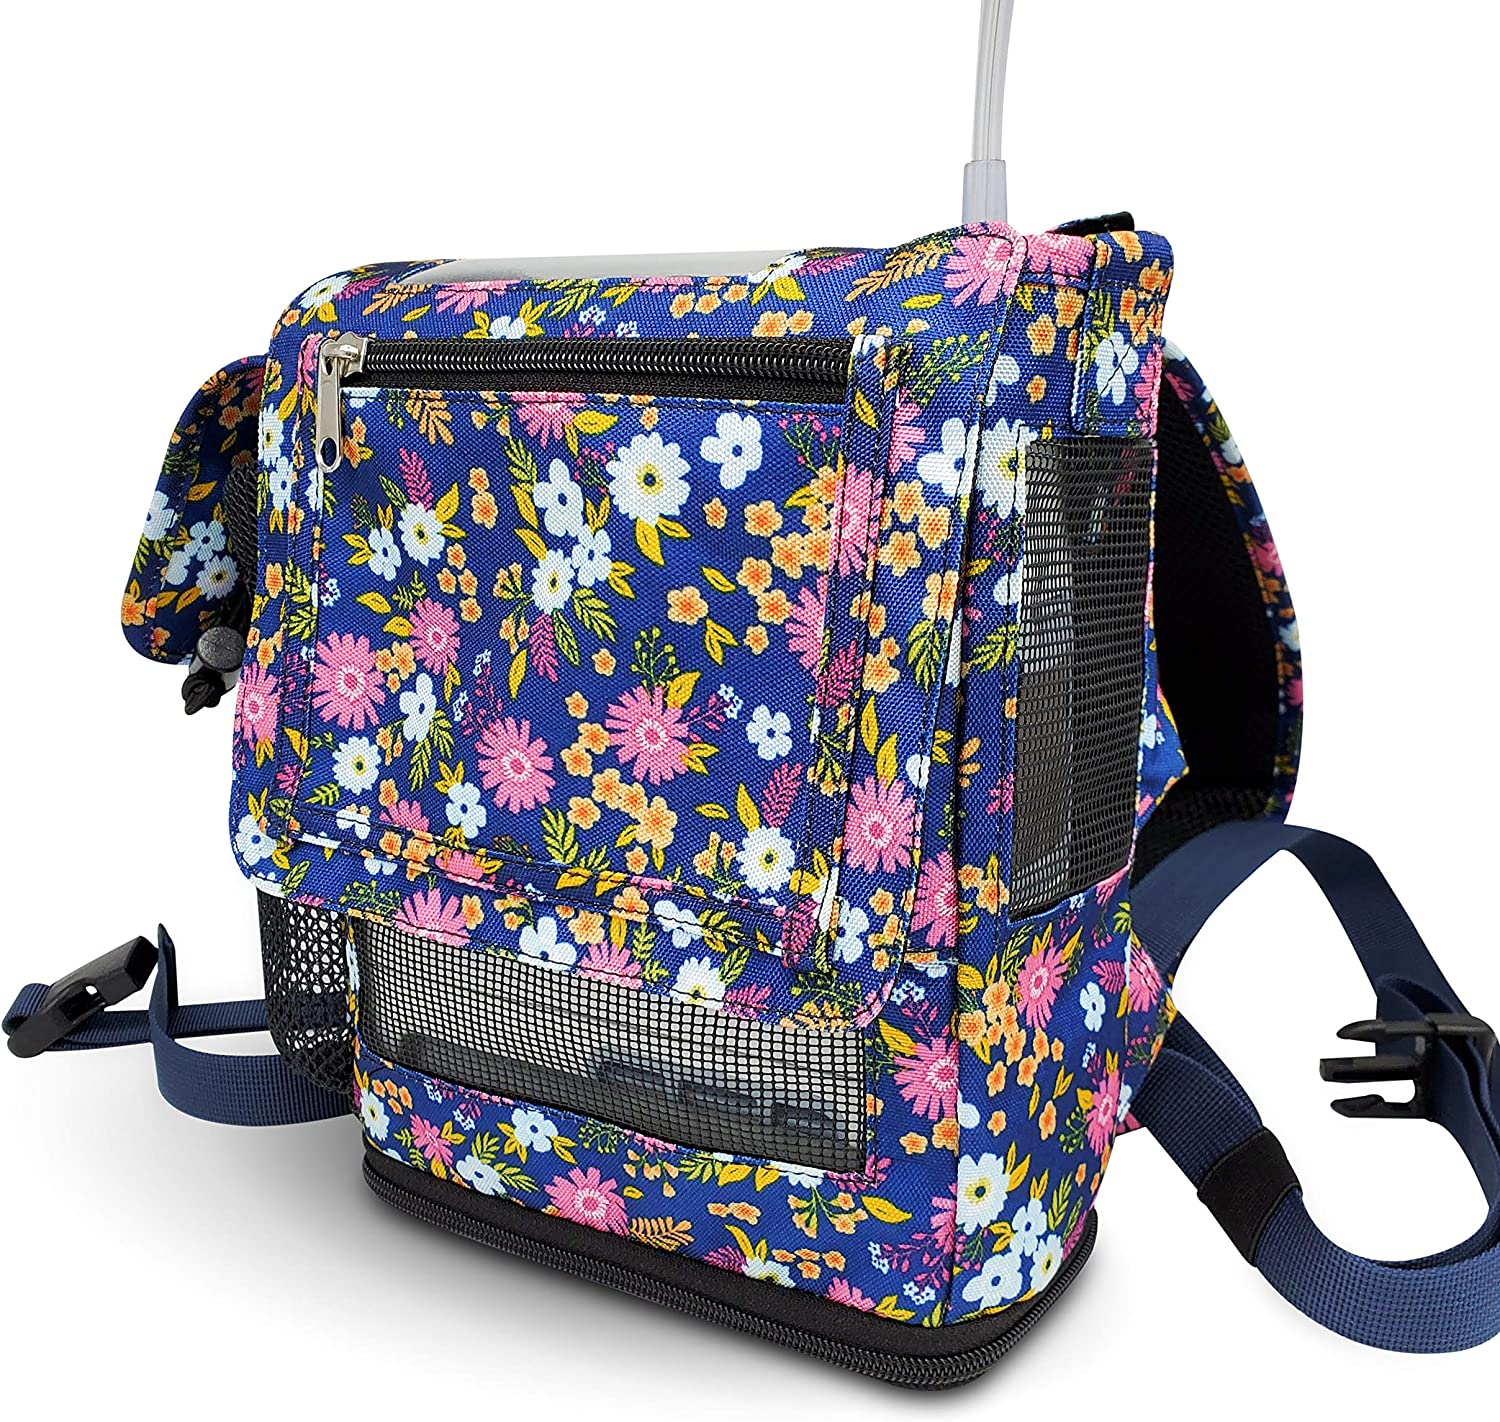 O2TOTES Lightweight Carrier for Inogen One G5 Oxygen Concentrator, Portable Oxygen Backpack with Adjustable Straps & Zippered Pockets, Floral